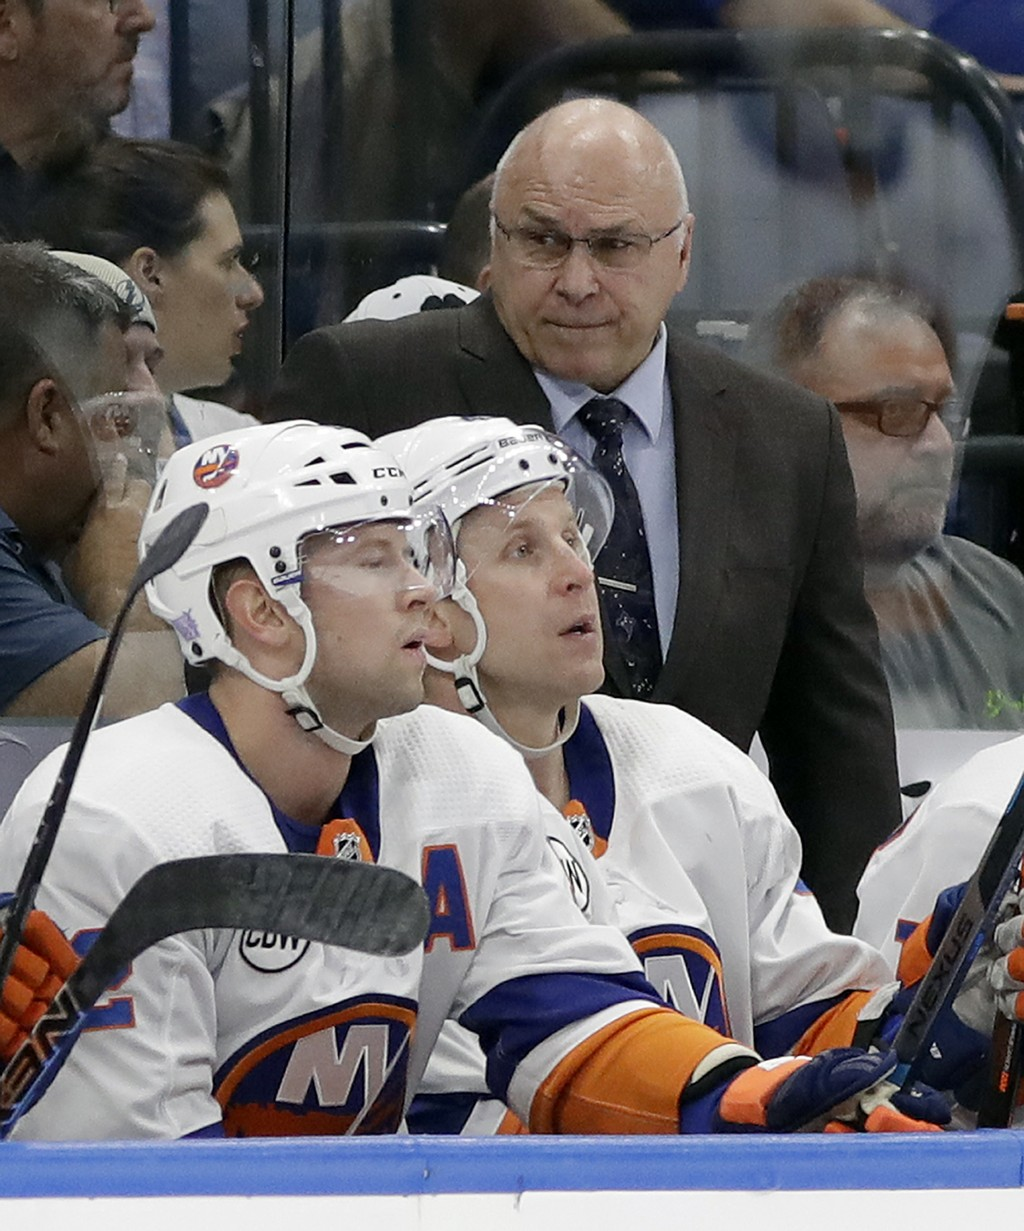 New York Islanders coach Barry Trotz talks to players during the first period of an NHL hockey game against the Tampa Bay Lightning on Thursday, Nov.